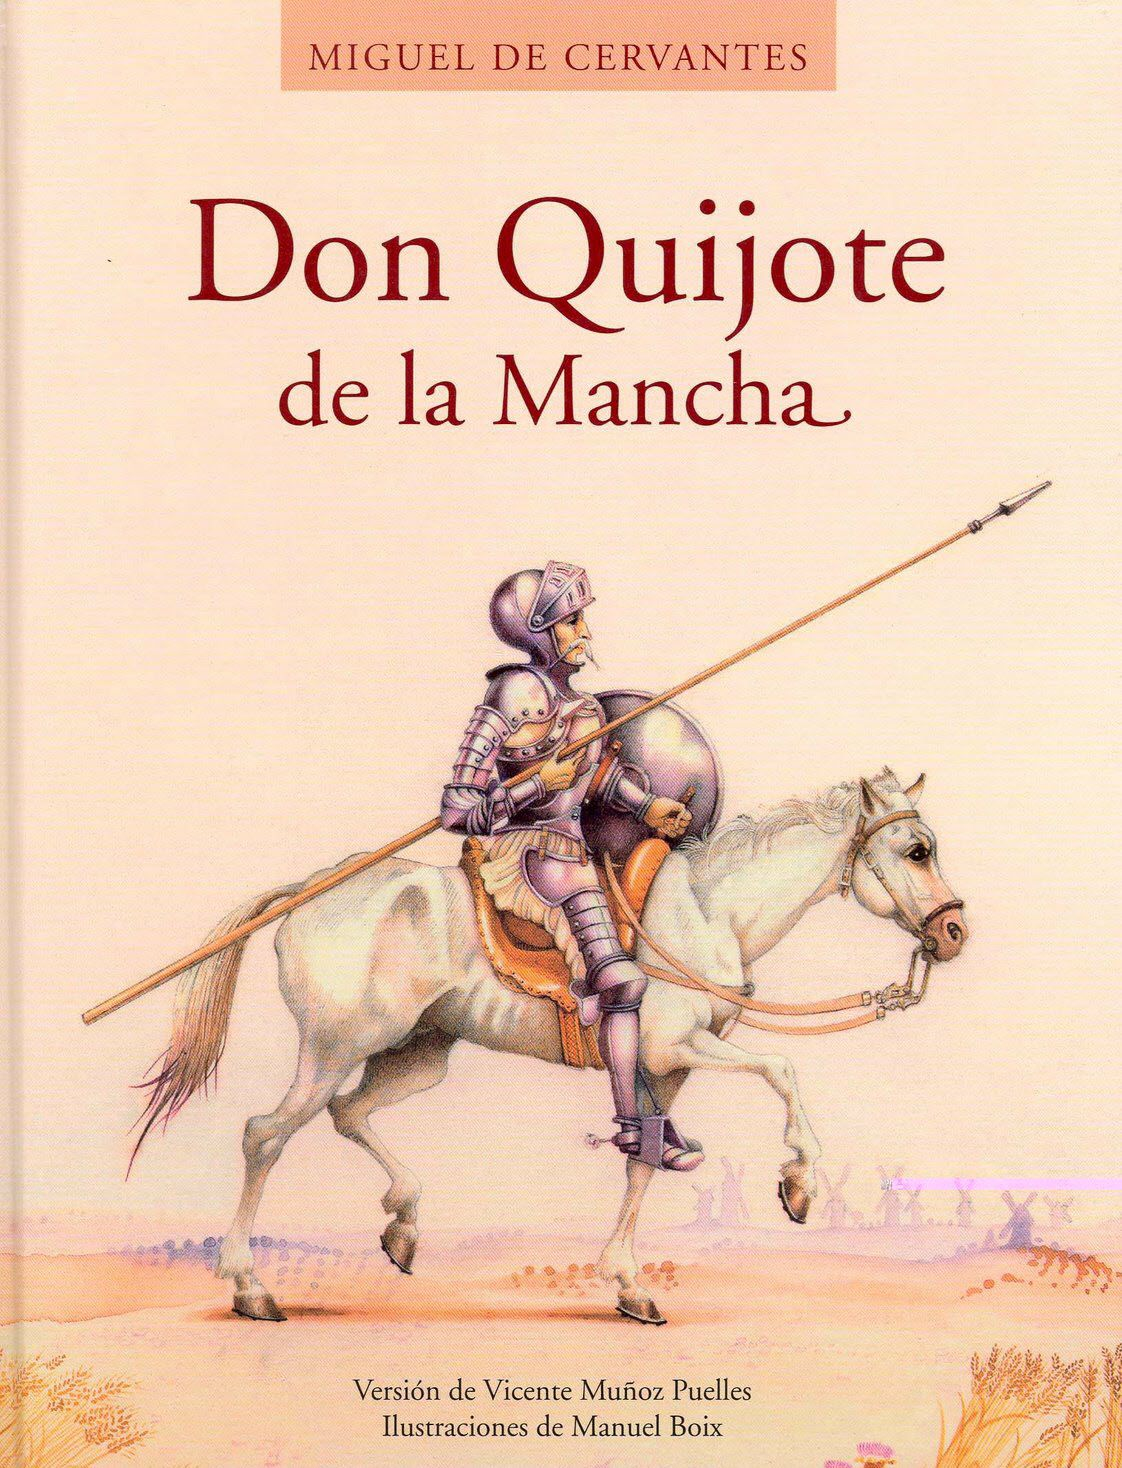 cervantes don quixote Although cervantes had already gone on record about intending to wrap up the story of don quixote in a second text, it is generally believed that the avellaneda debacle was the straw that broke.